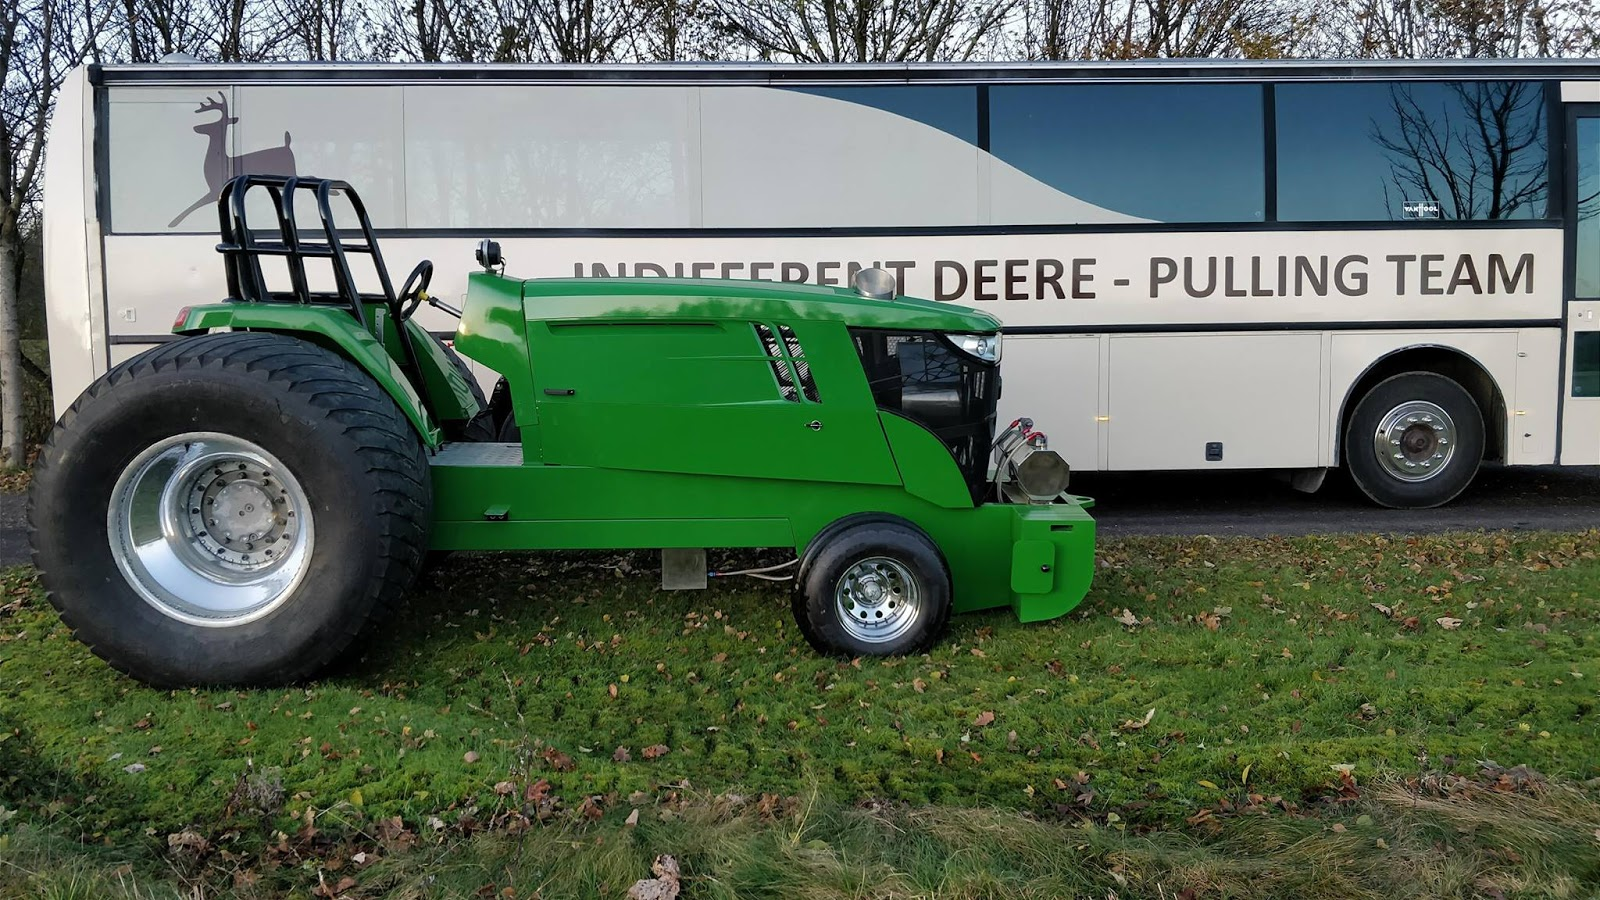 After almost 1 year of building, the new John Deere Component Super Stock Tractor of the Indifferent Deere Pulling Team from Herning in Denmark is ready.